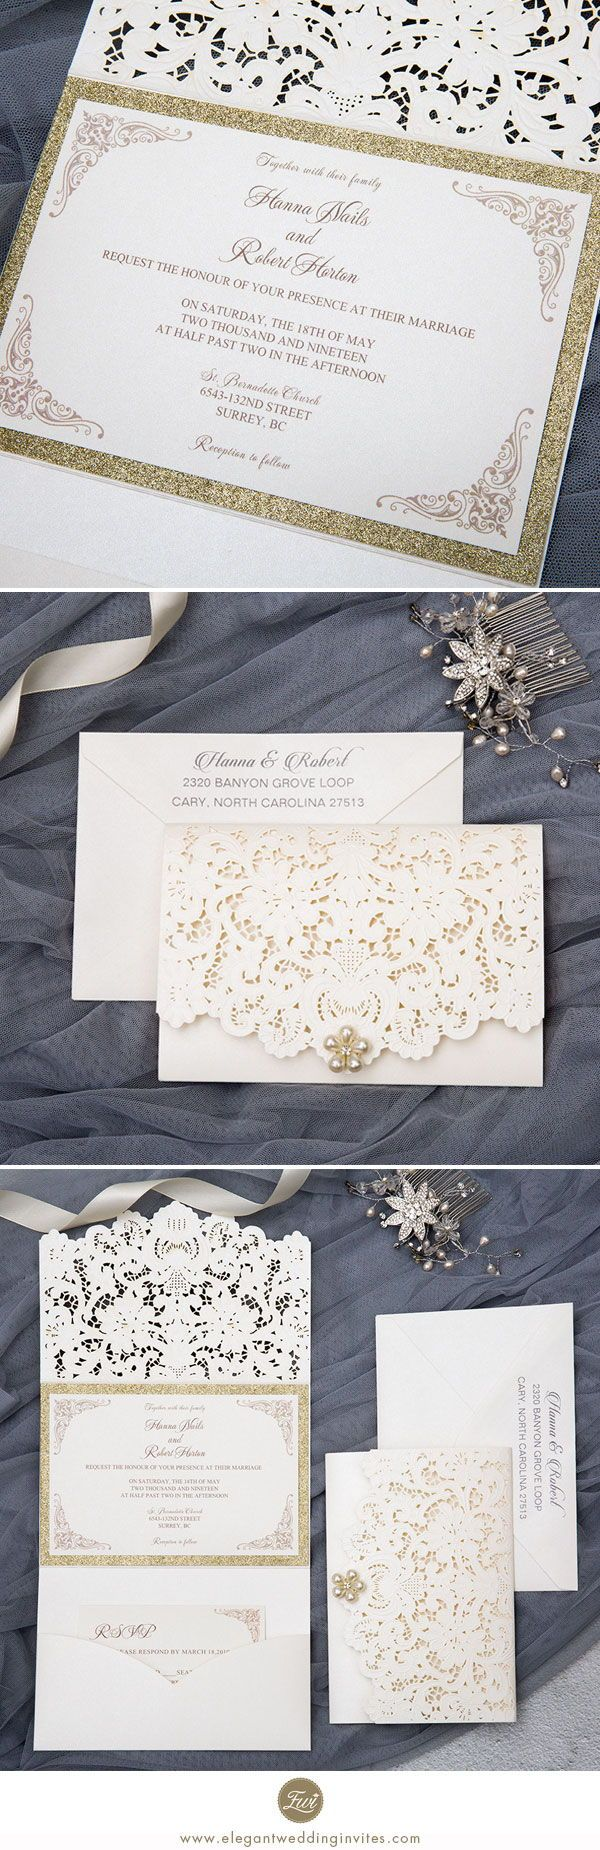 342 best Wedding Invitations images on Pinterest